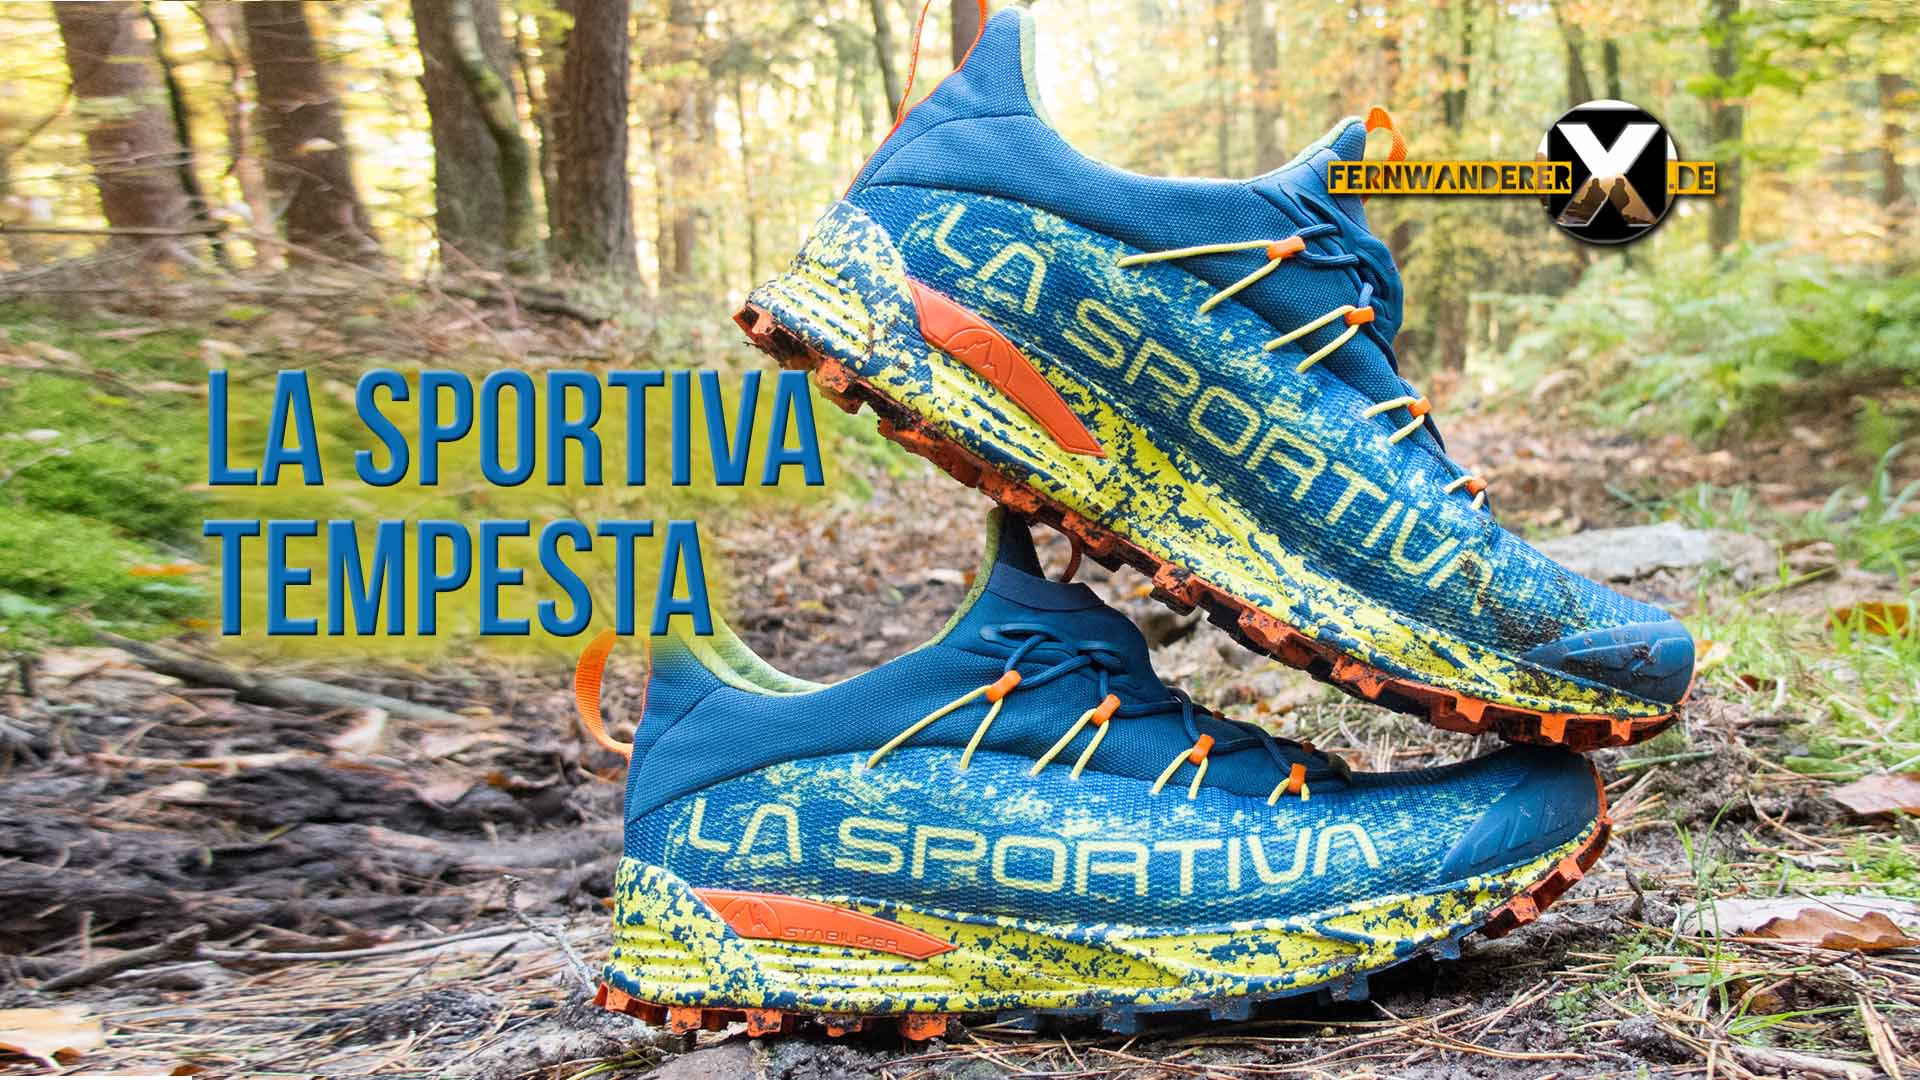 [:de]La Sportiva Tempesta- Mountain Running Schuh Review u Test[:en]La Sportiva Tempesta GTX Review[:]